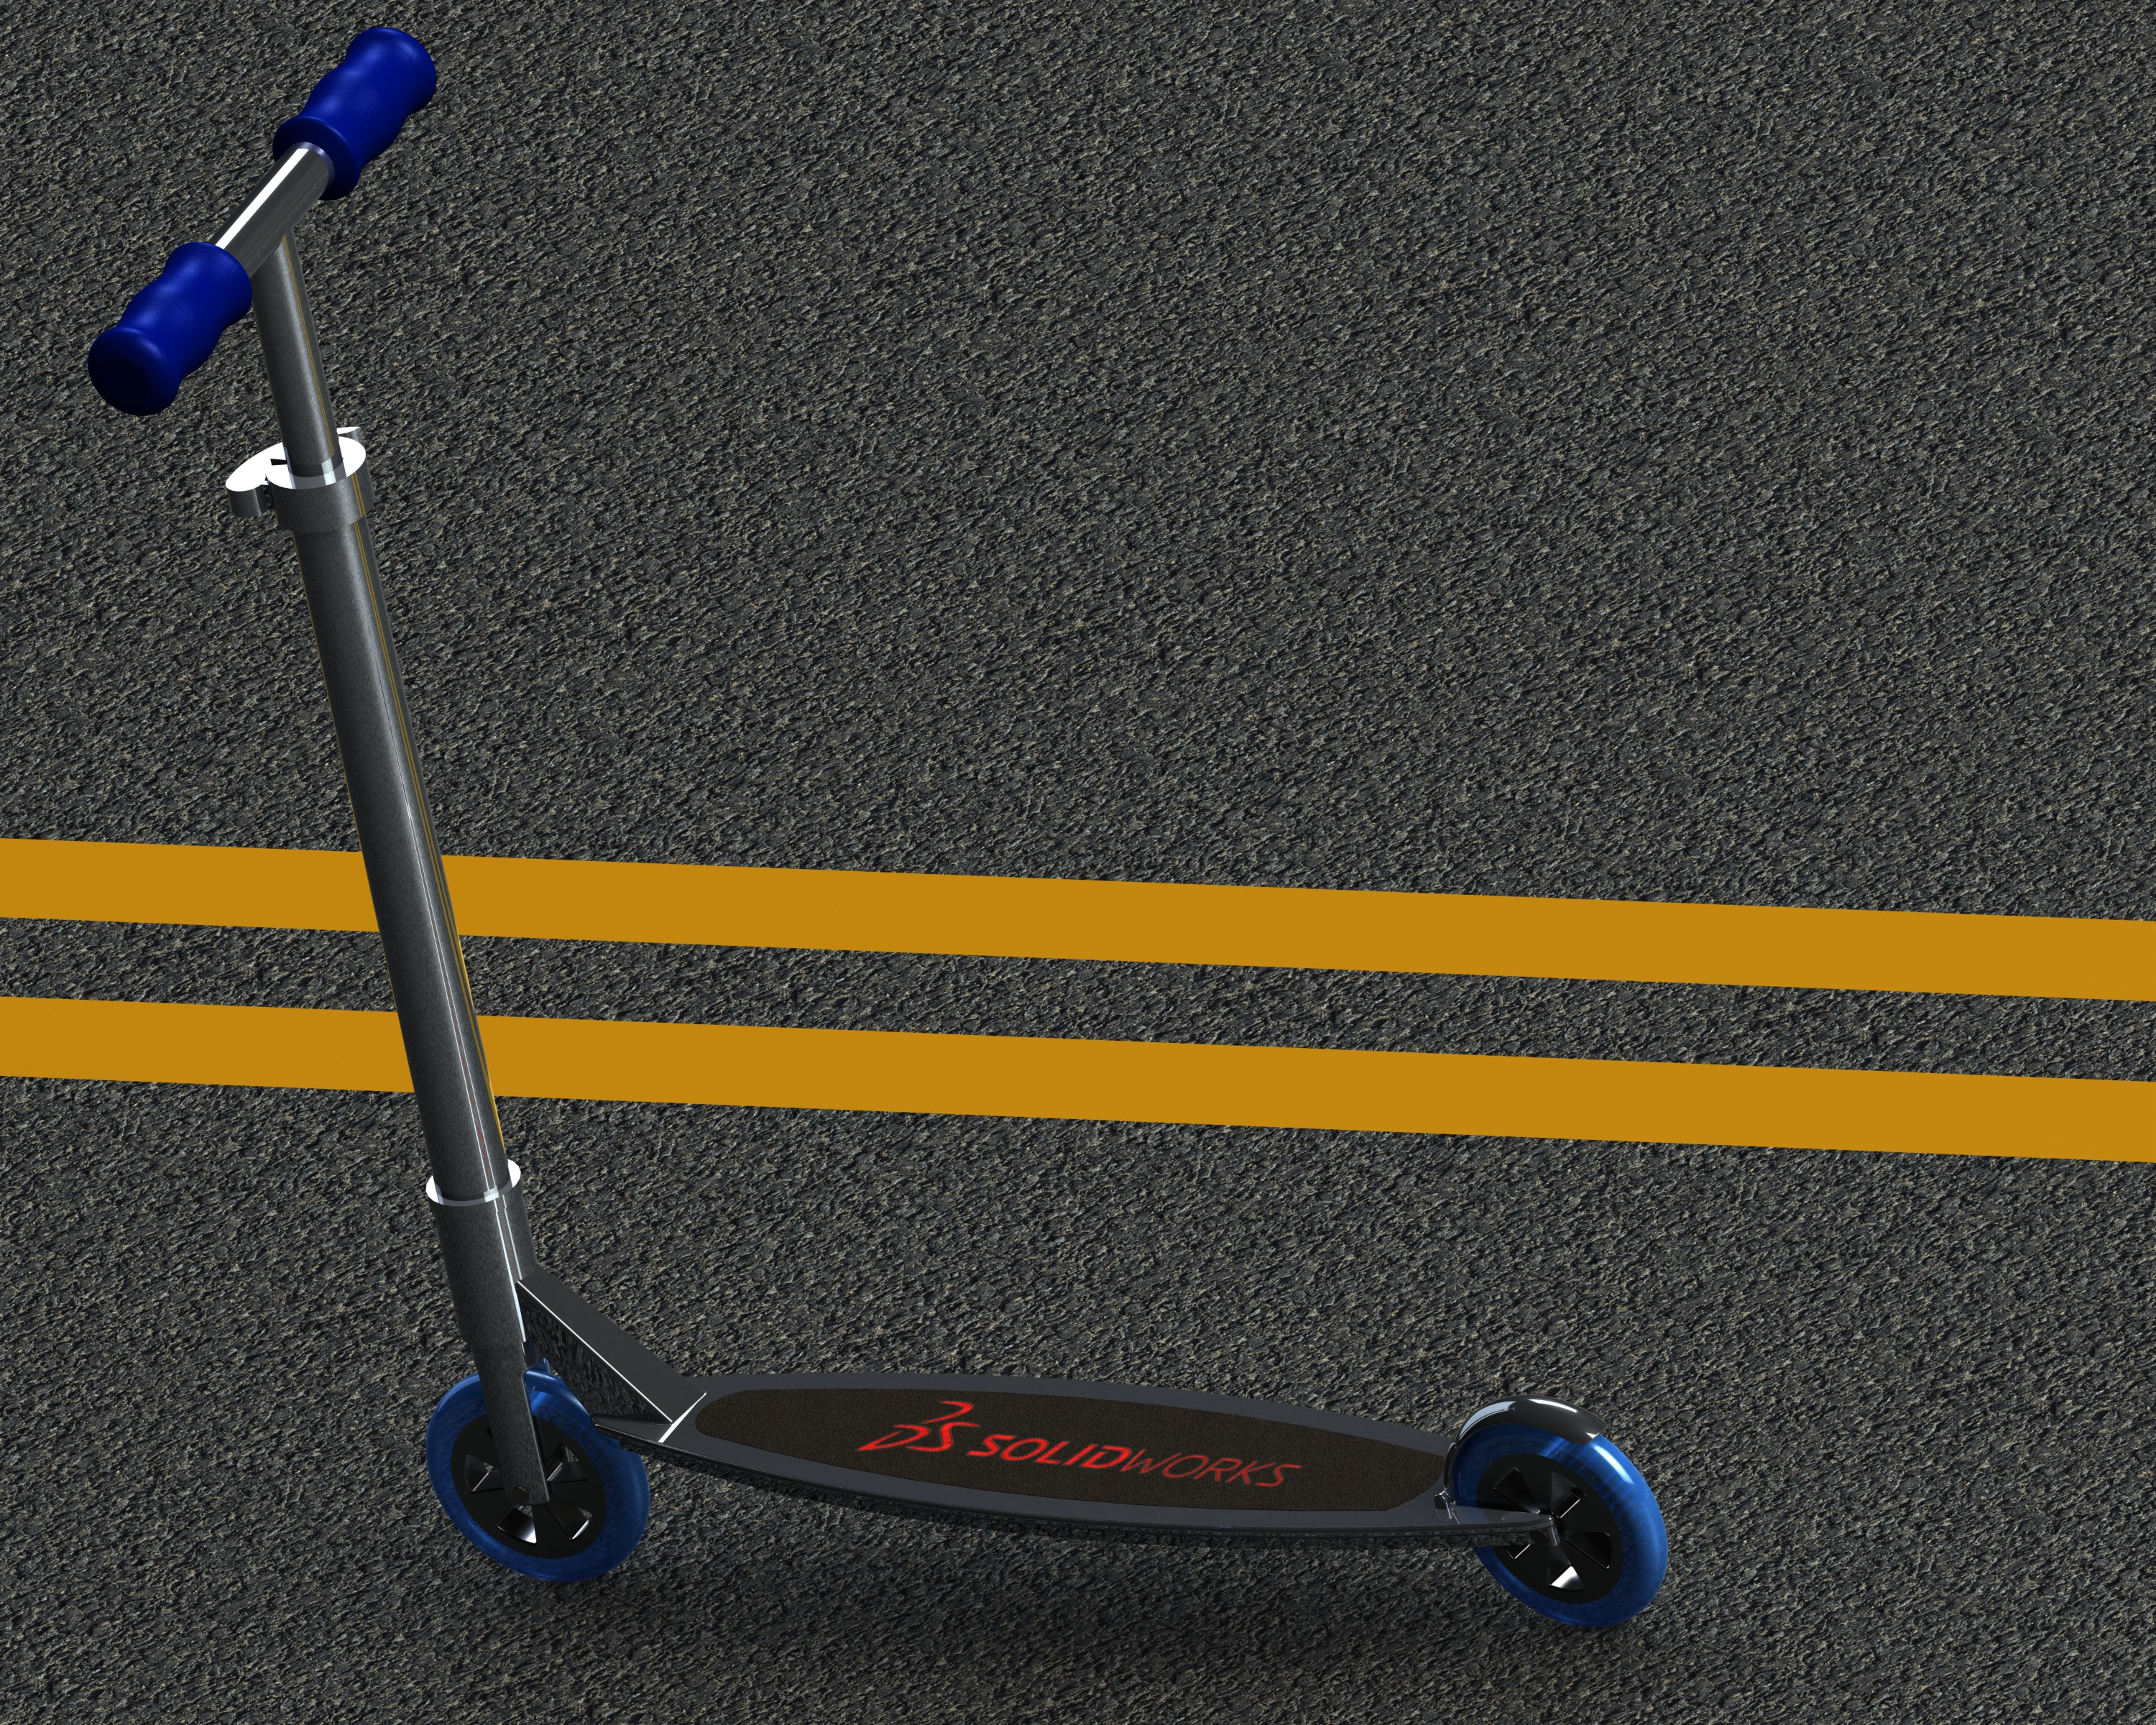 Scooter in SolidWorks